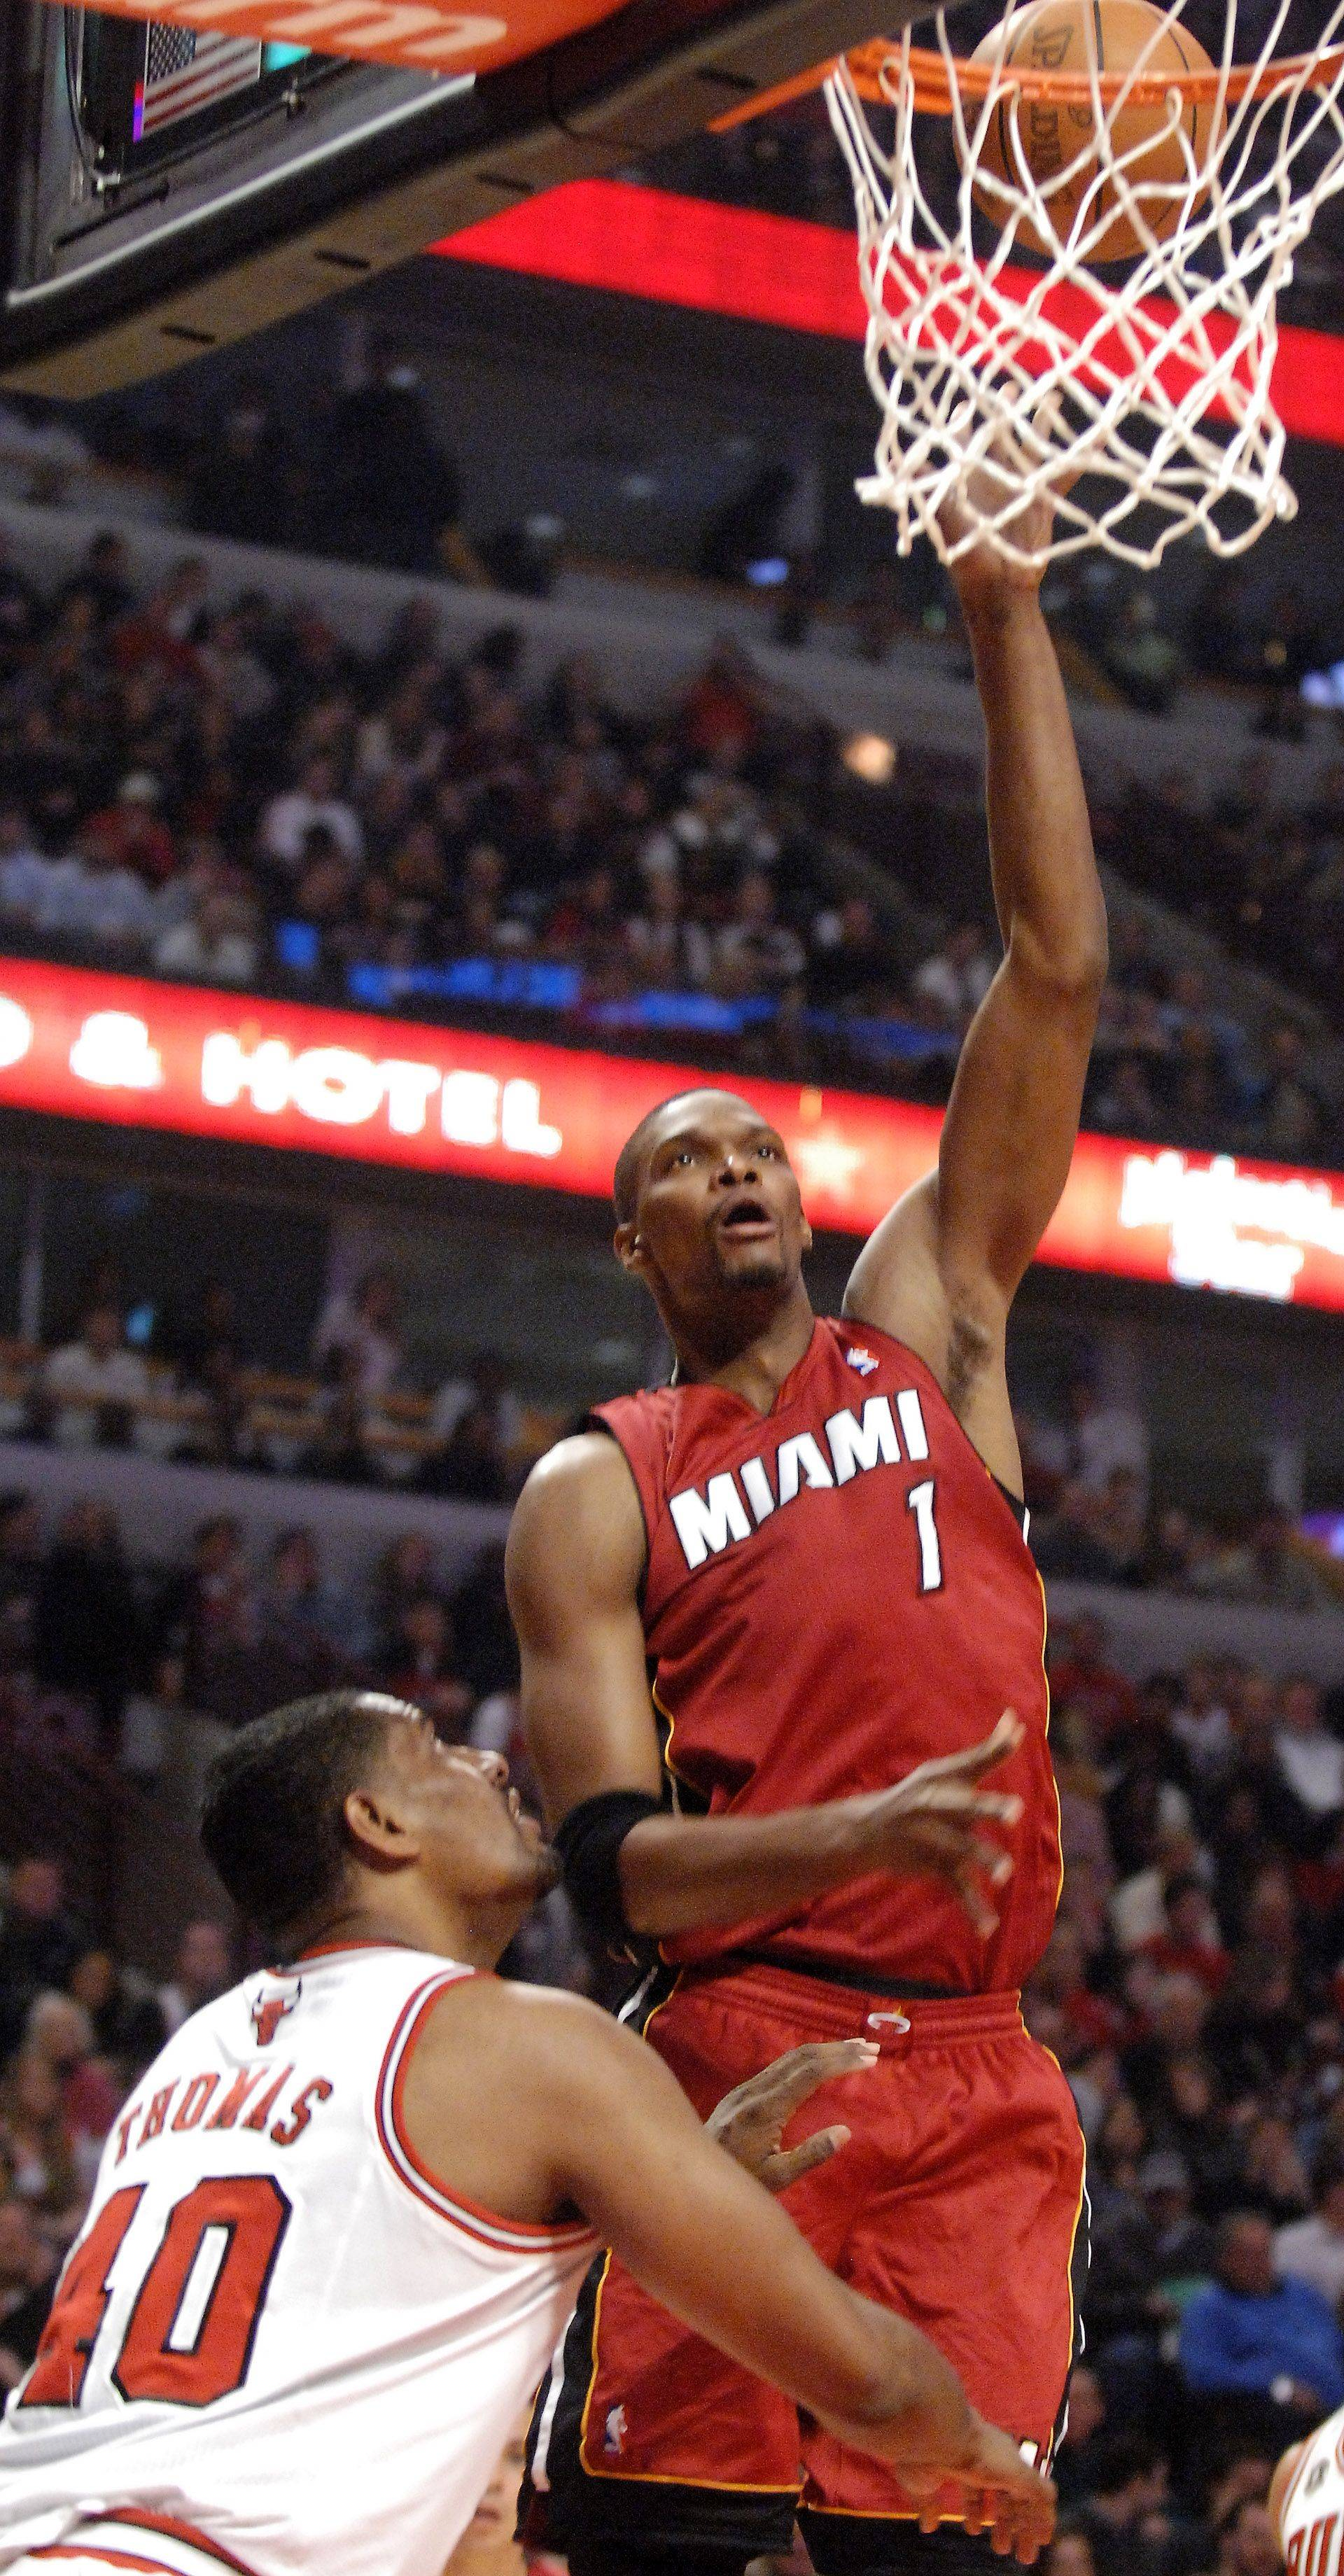 Miami Heat power forward Chris Bosh scores over Chicago Bulls center Kurt Thomas during Saturday's game at the United Center in Chicago.